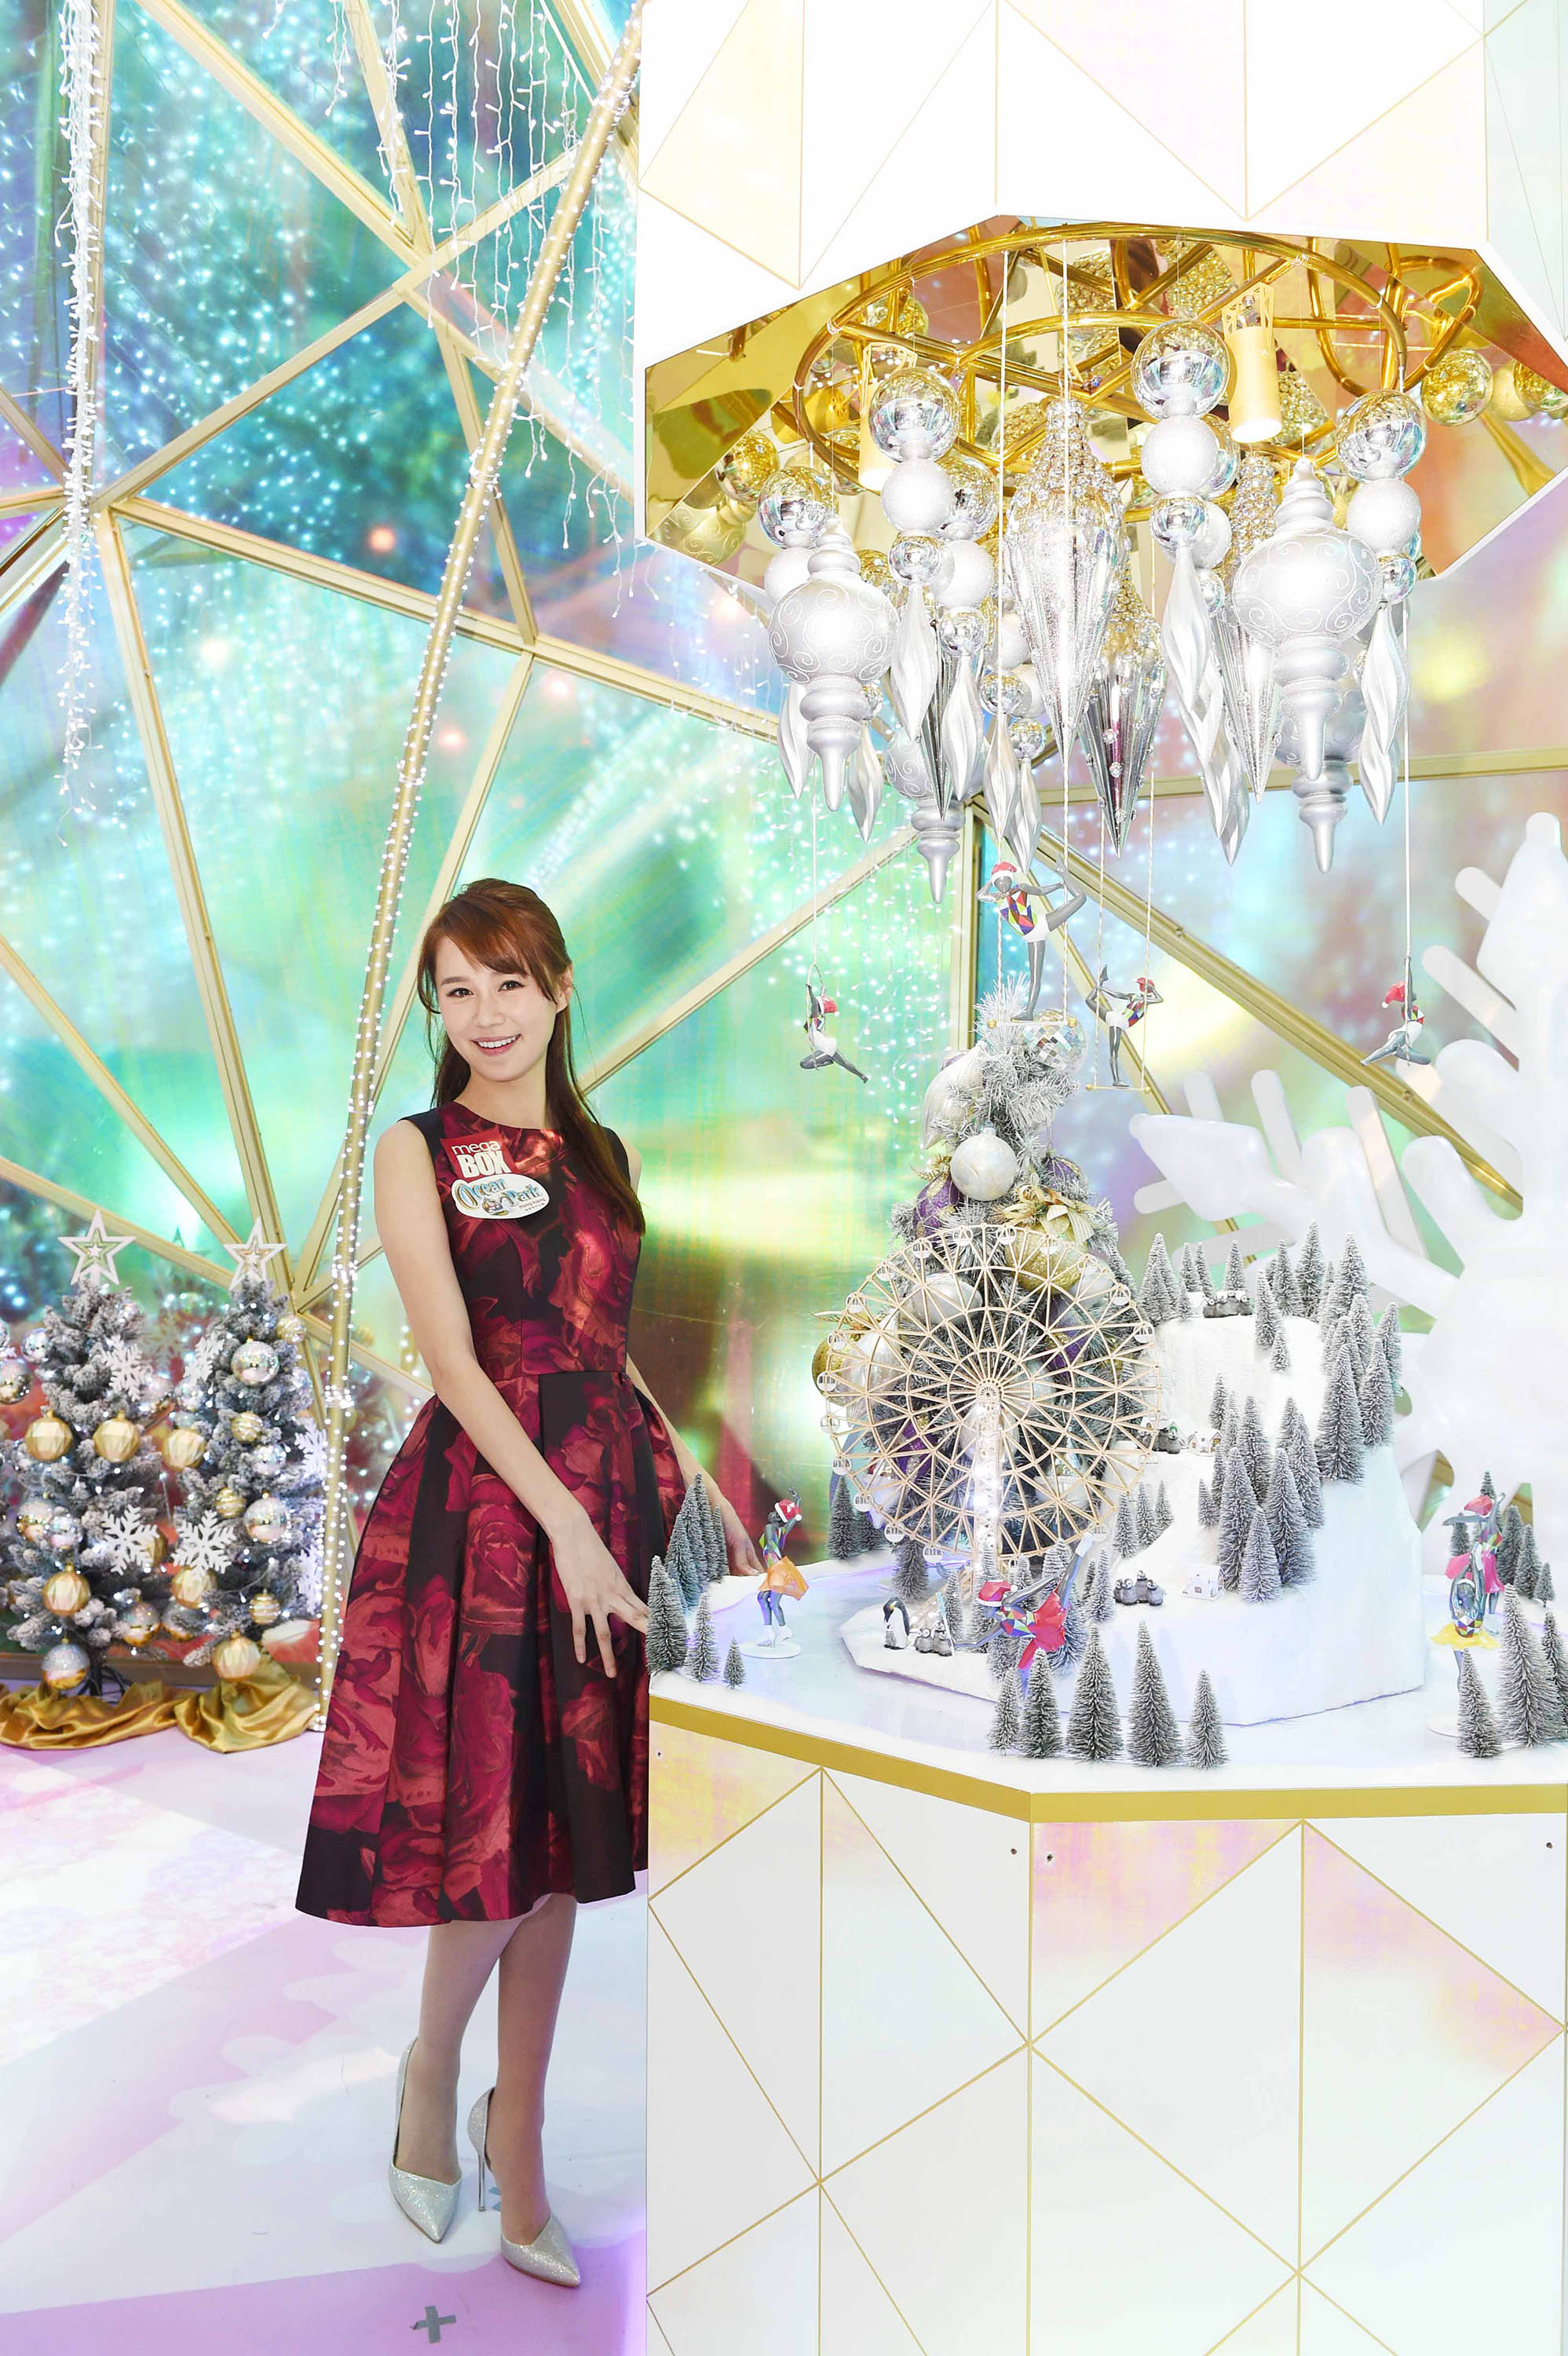 MegaBox x Ocean Park Glamorous Xmas Town Kick-off Ceremony